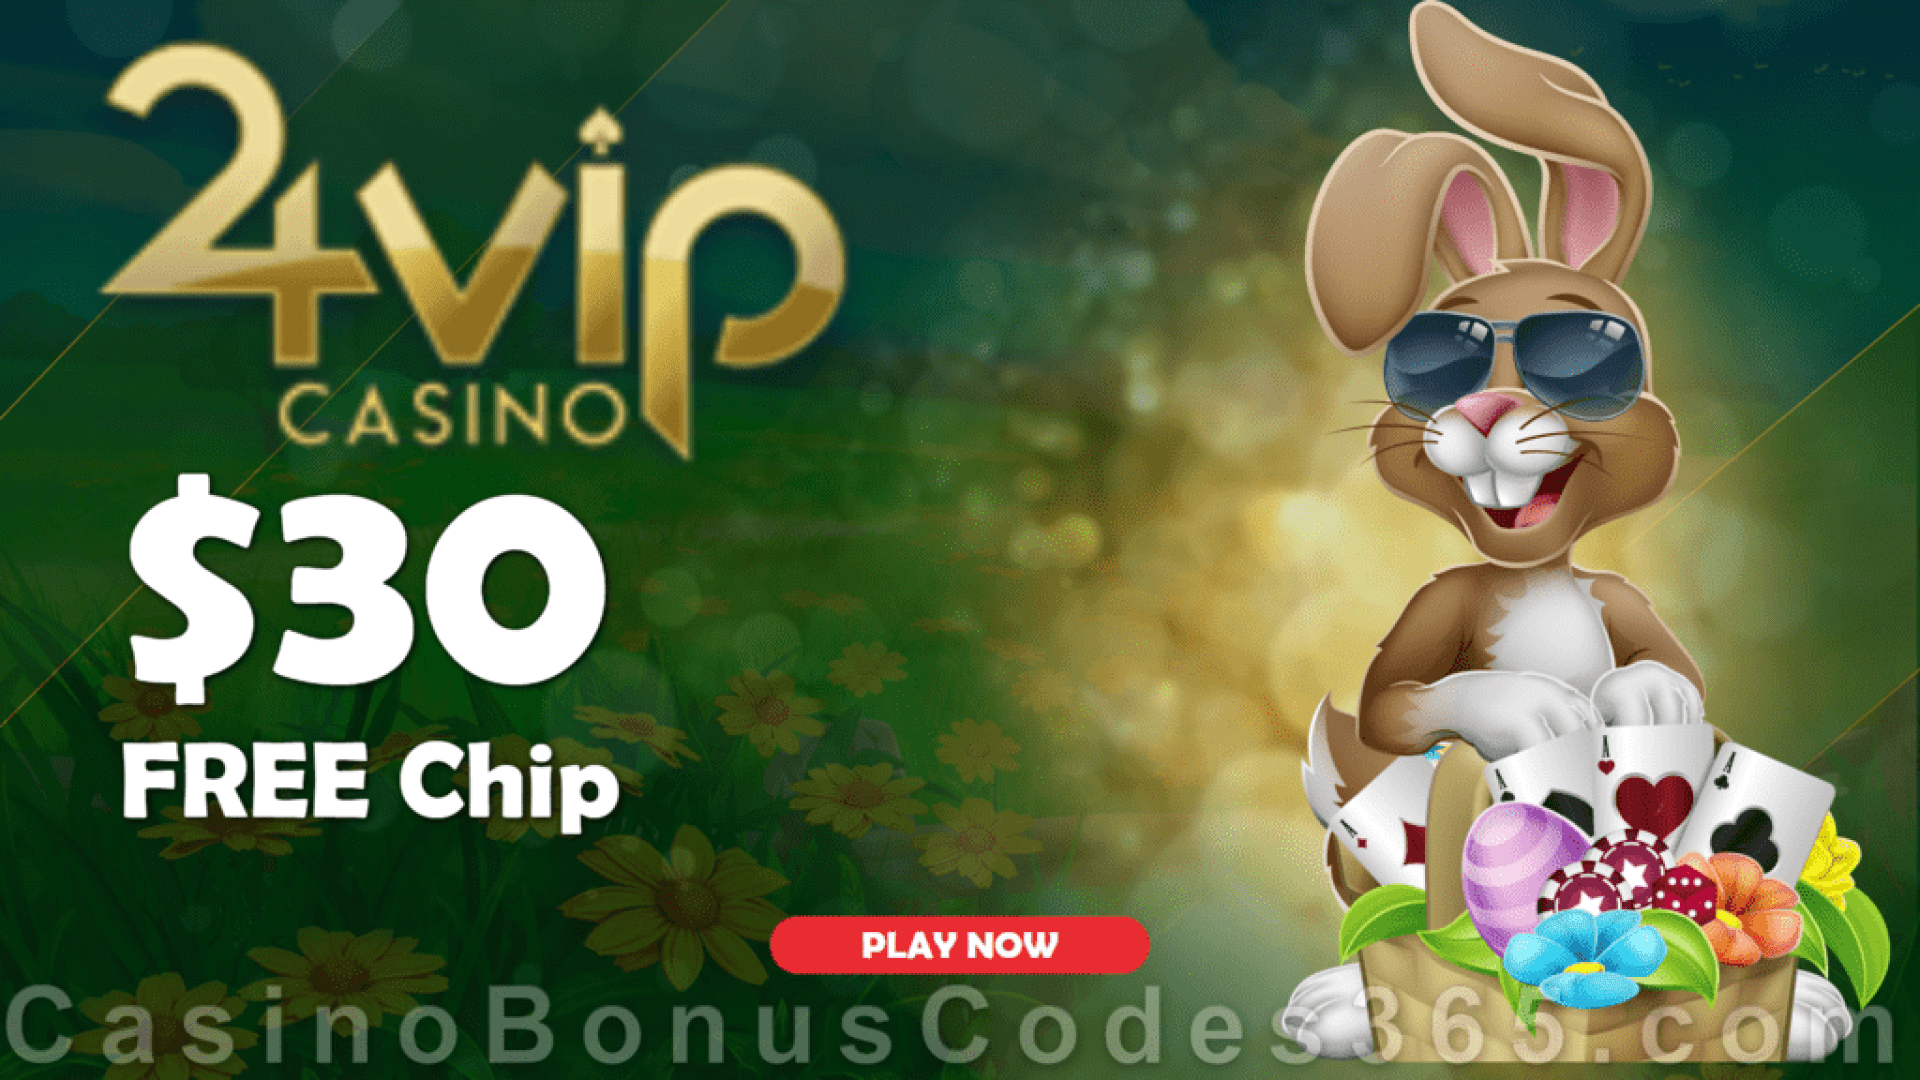 24VIP Casino $30 FREE Chips Easter Special No Deposit Deal